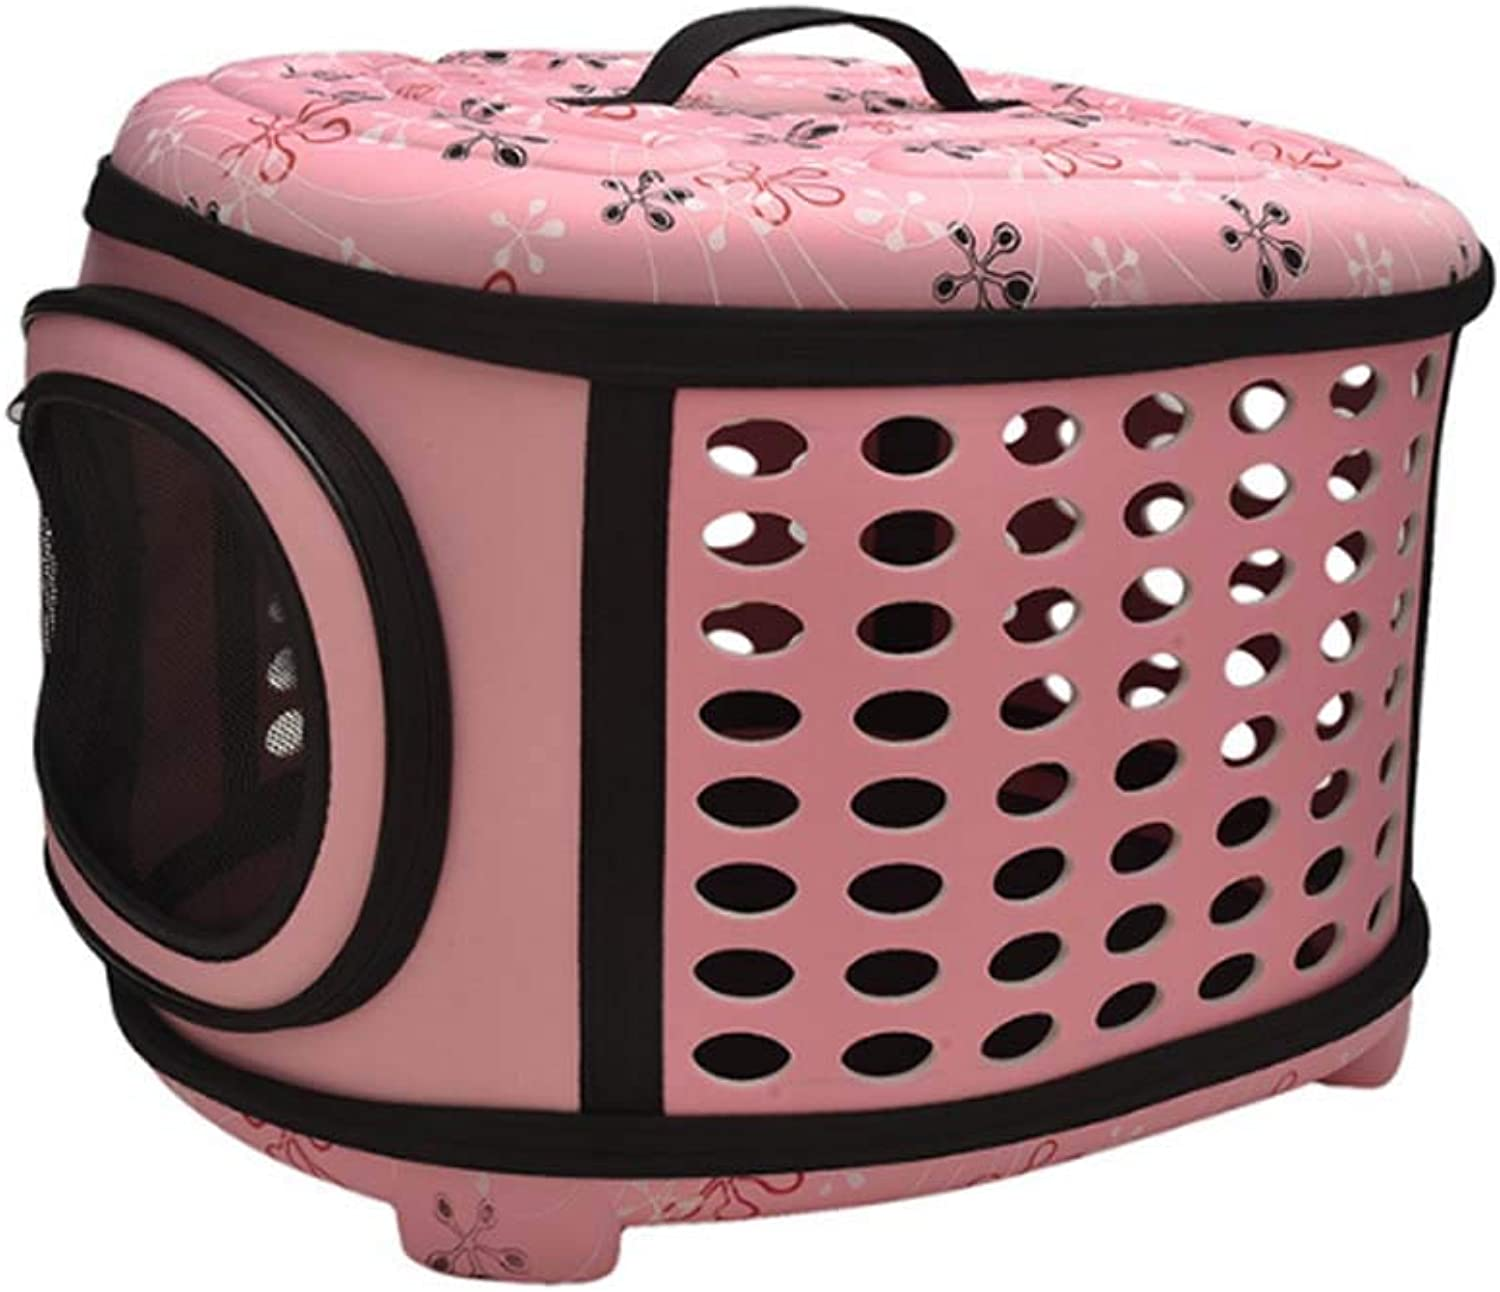 44 X 38X32 cm Large Pet Carrier EVA, SoftSided Pet Carrier, Cat Carrier,Ferret Carrier,Bunny Carrier for Small Pet Only,Pink